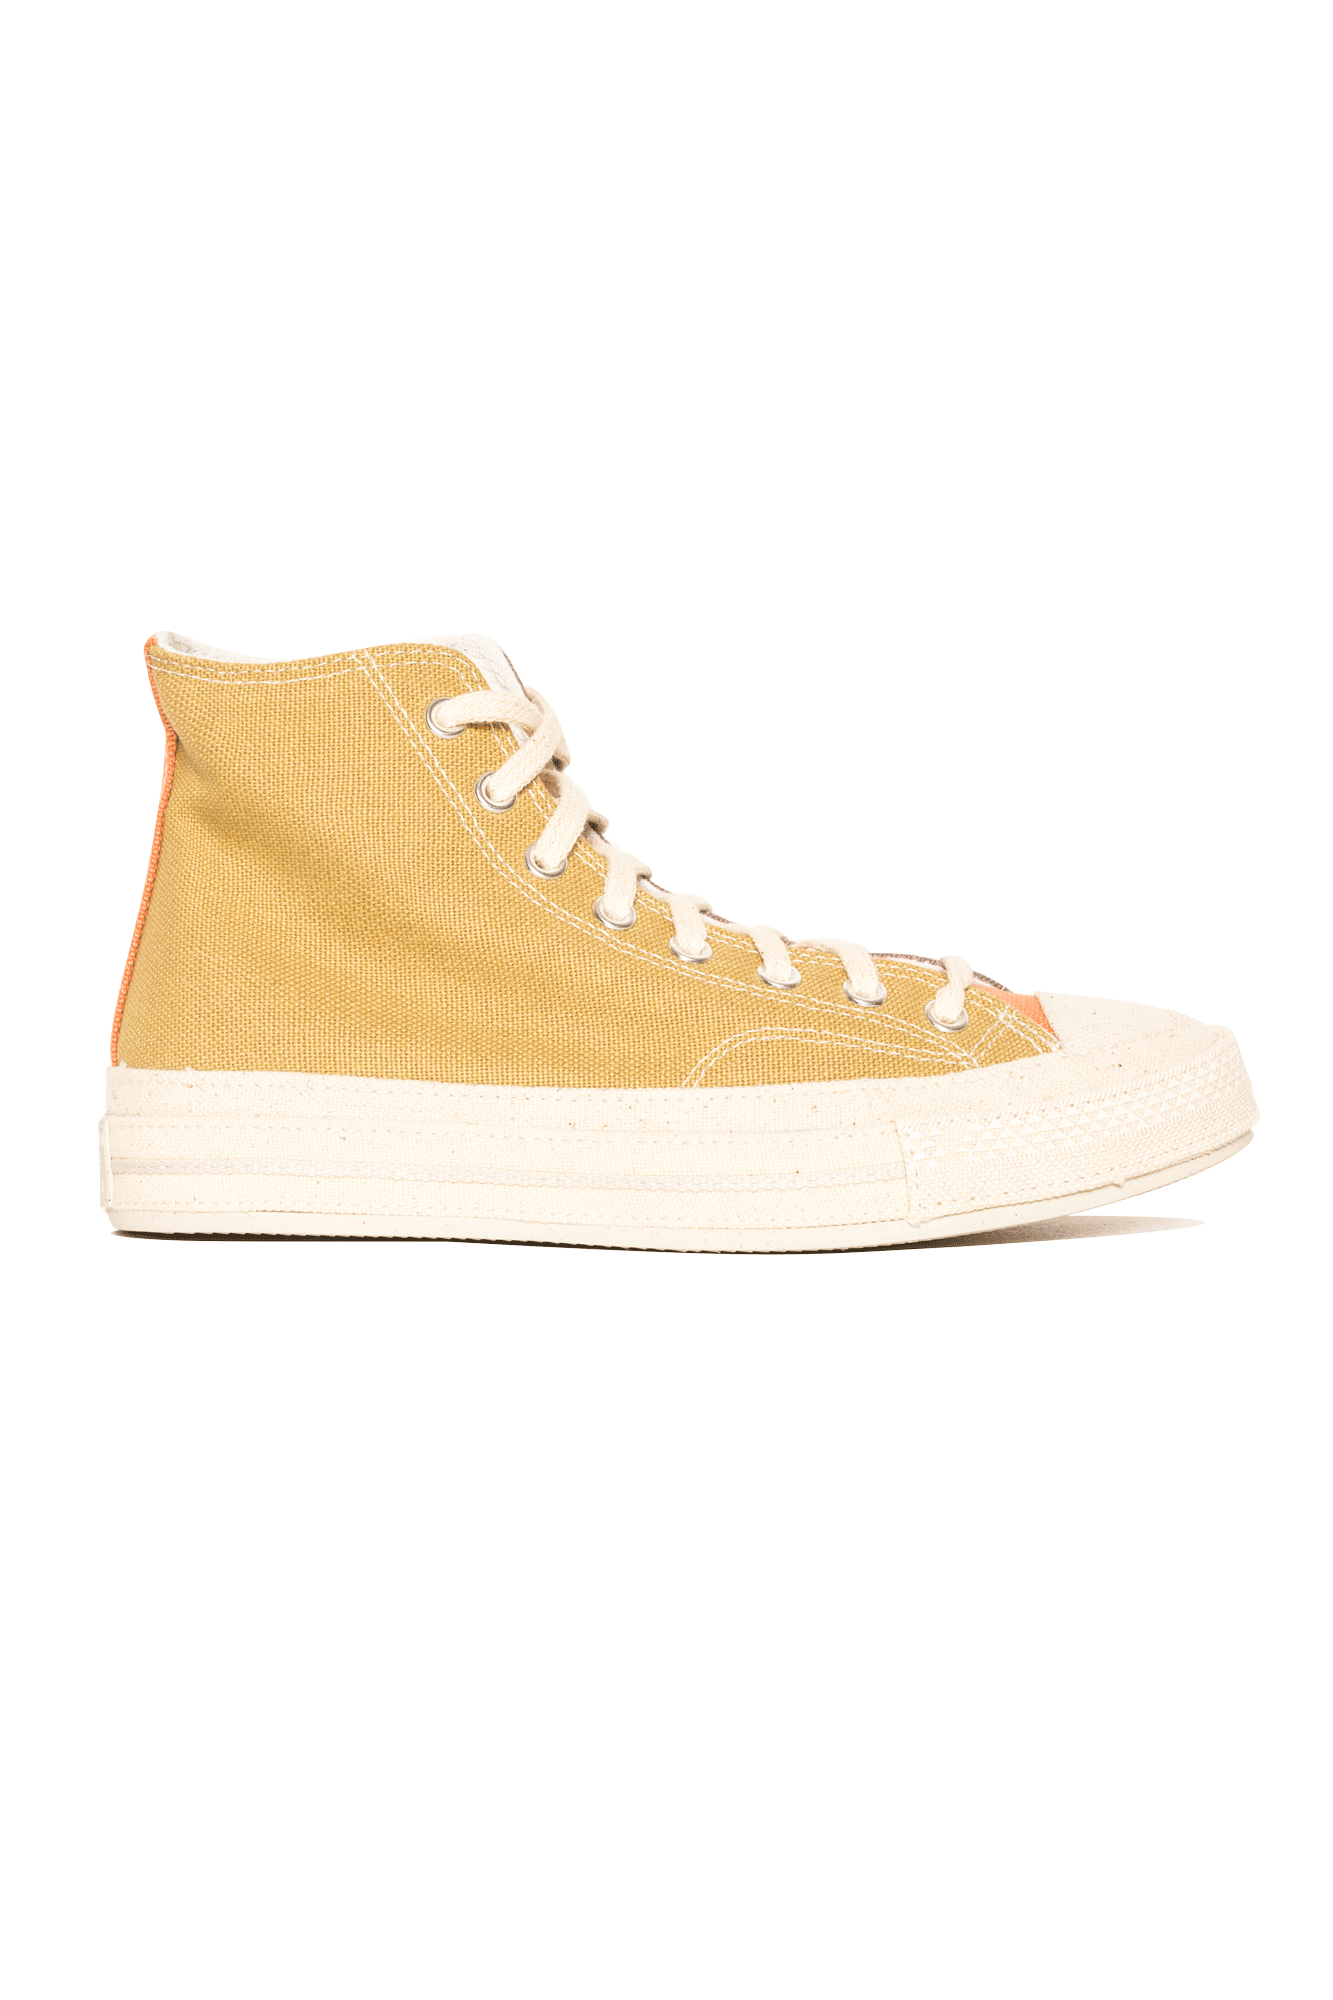 Chuck 70 HI Tri Panel Renew Multicolor